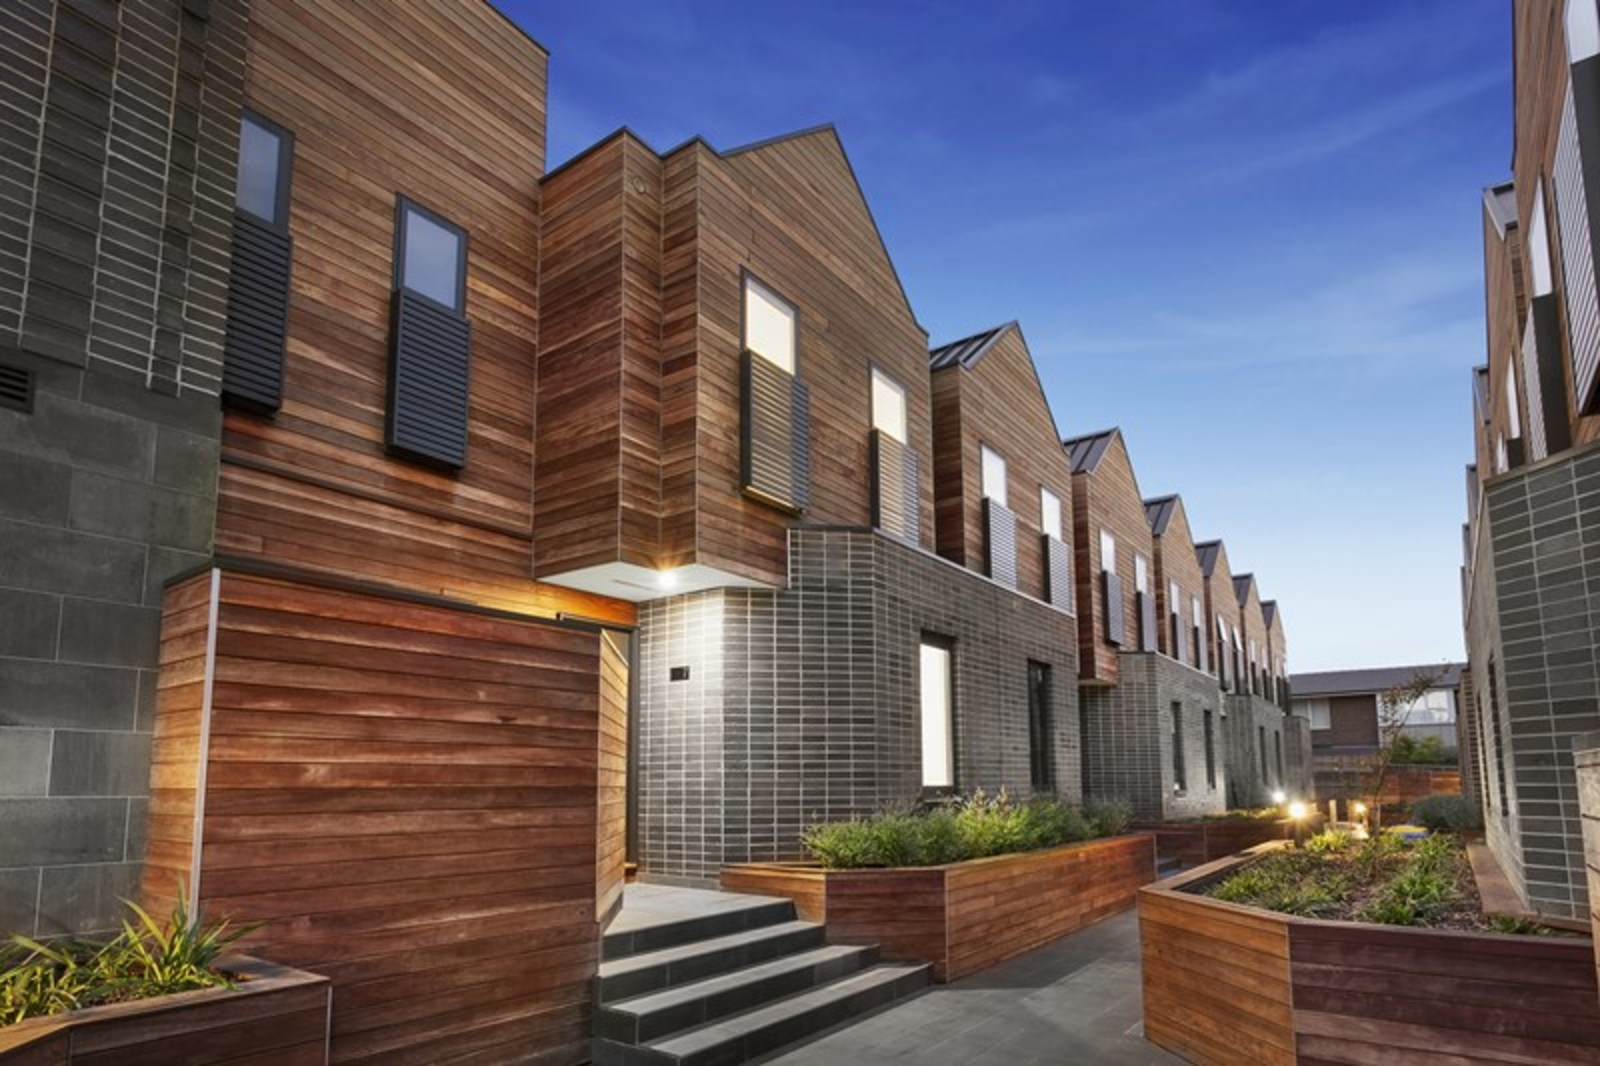 1/456 Barkers Road, Hawthorn East 3123 - Image 7